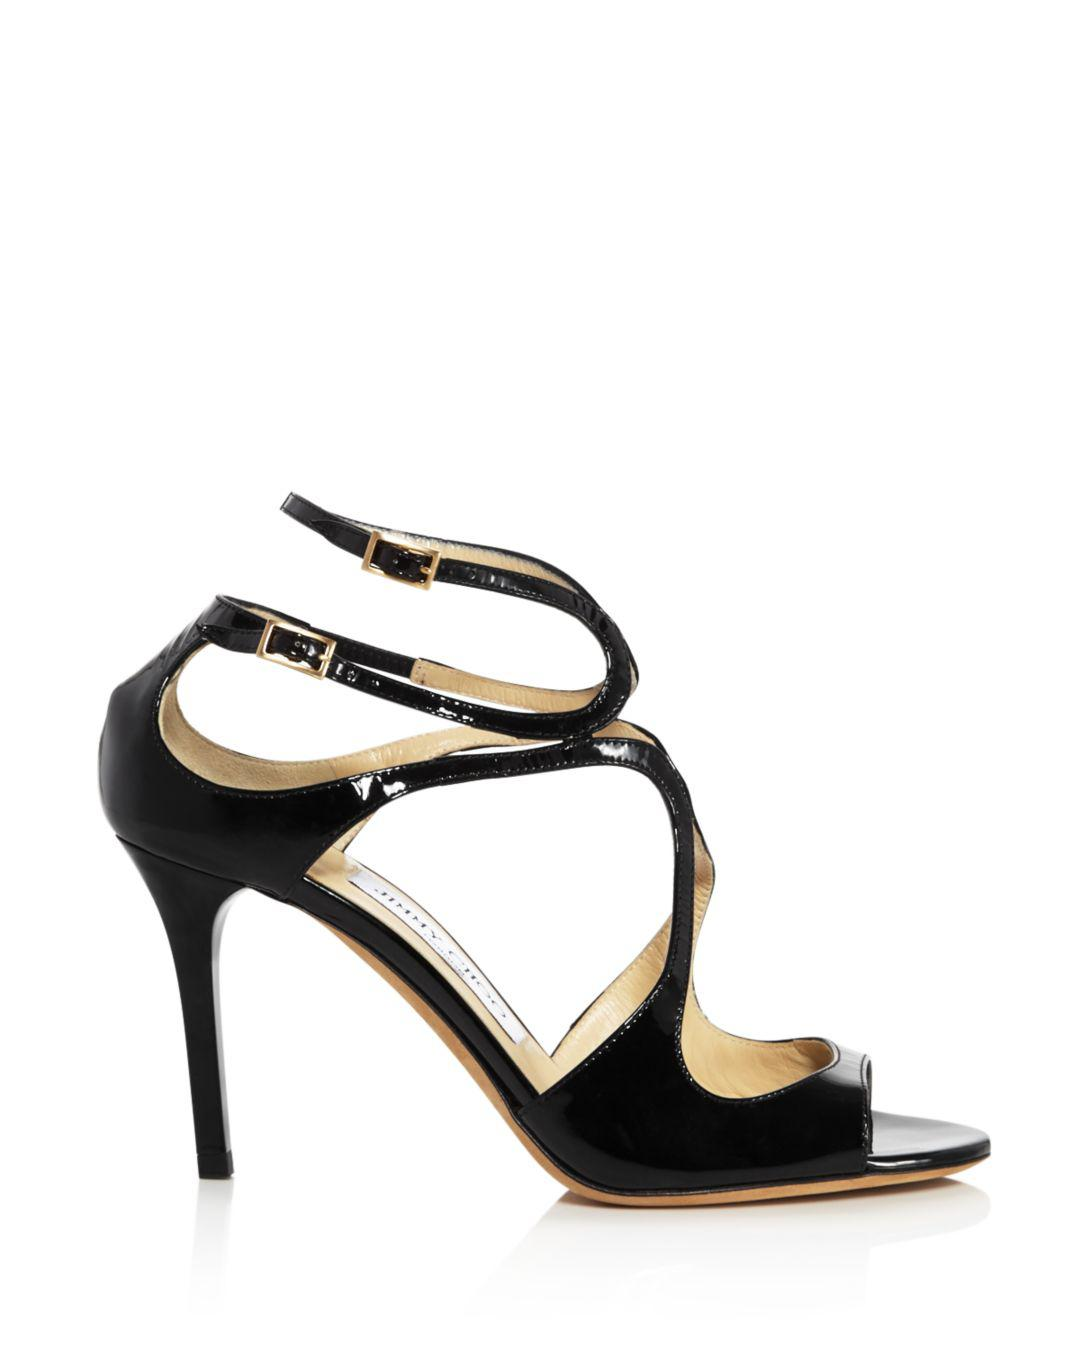 d85078cfc Jimmy Choo Women's Ivette 85 High-heel Sandals in Black - Save 48% - Lyst